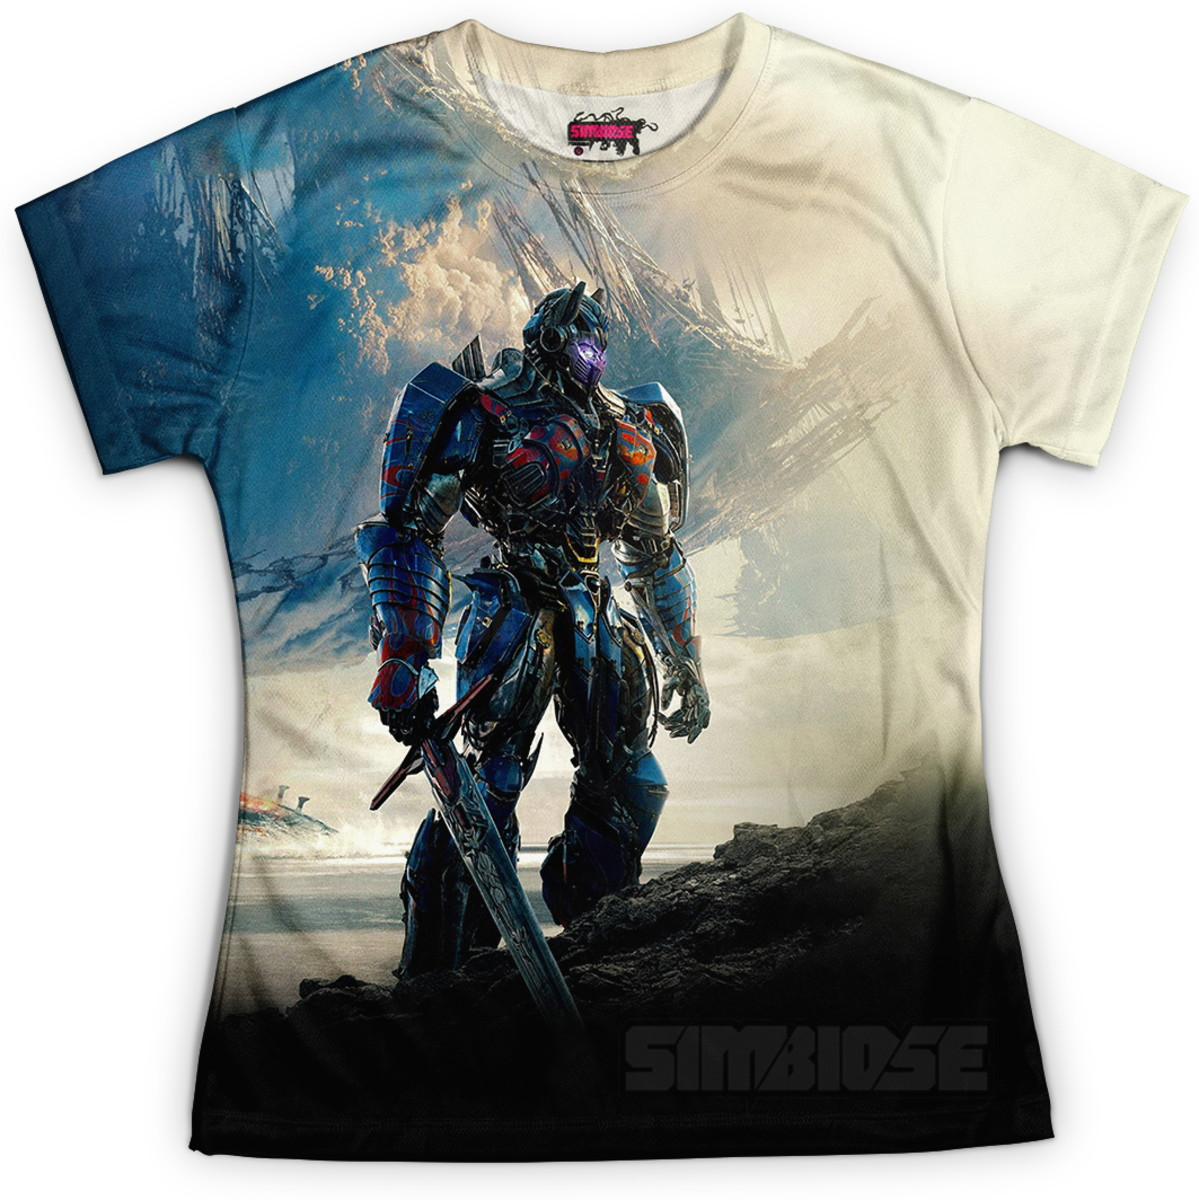 fedf8cea89 Camiseta Baby Look Feminina Optimus Prime Transformers MD03 no Elo7 ...